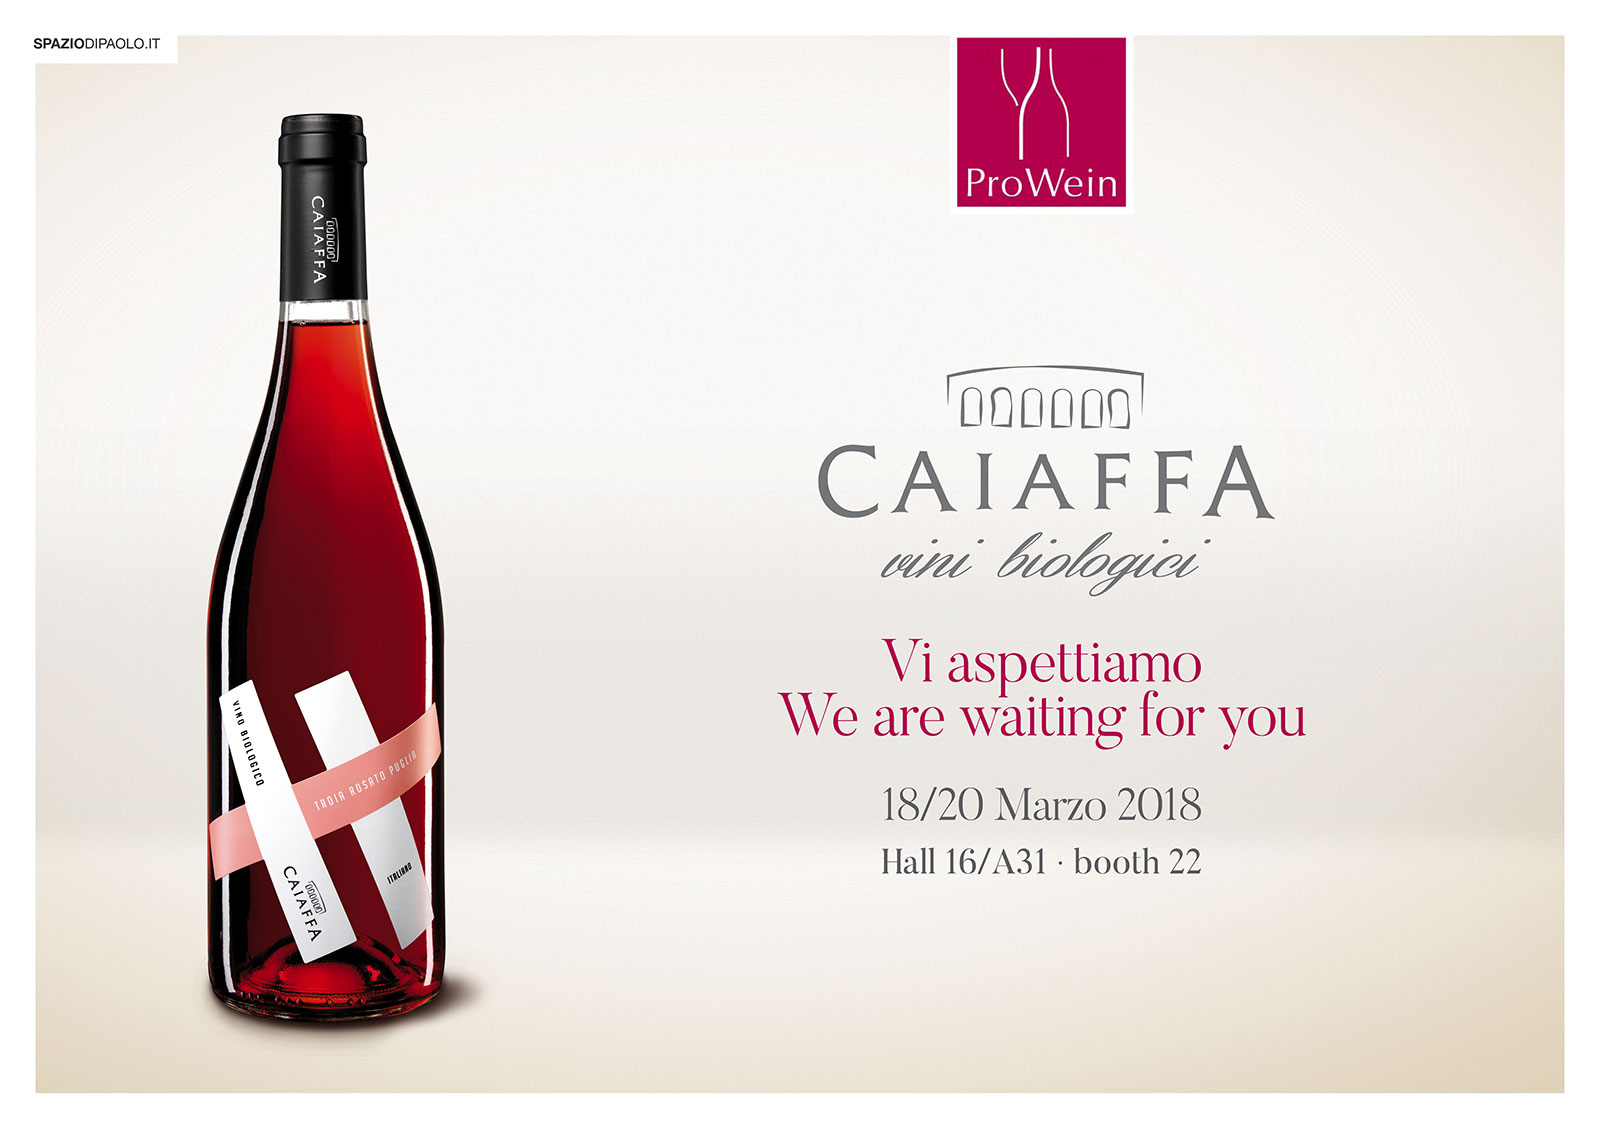 ProWein – We are waiting for you